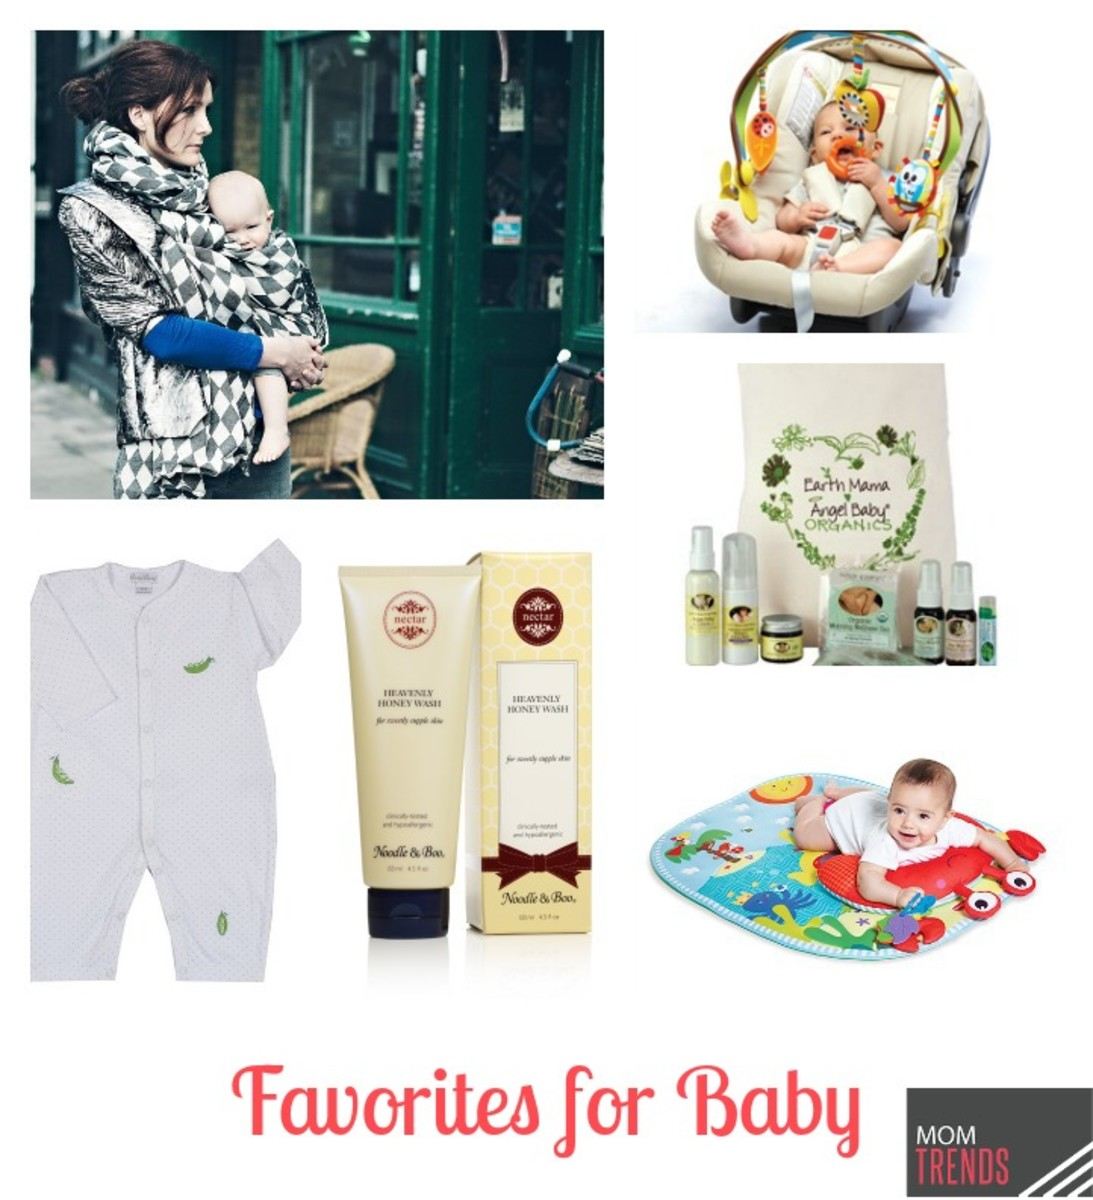 Favorites for Baby